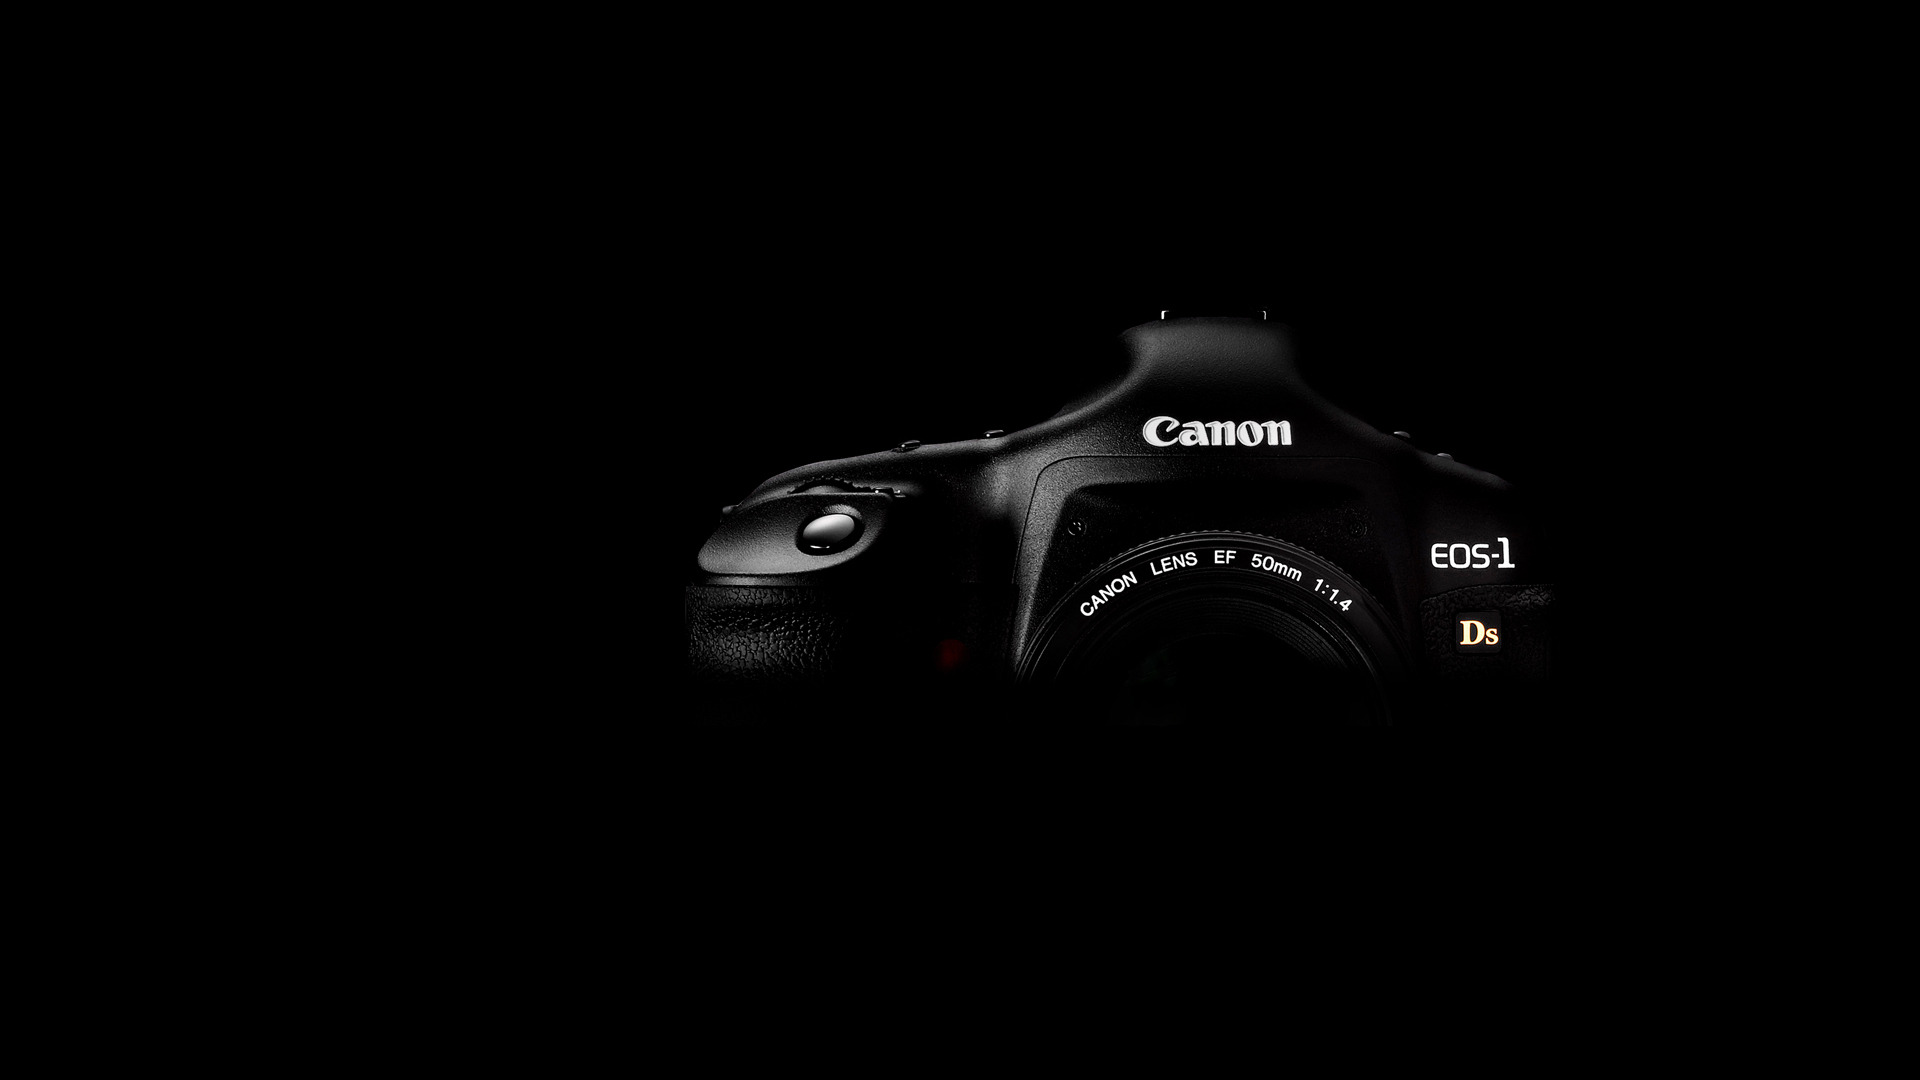 Canon EOS-1 1920x1080 wallpaper